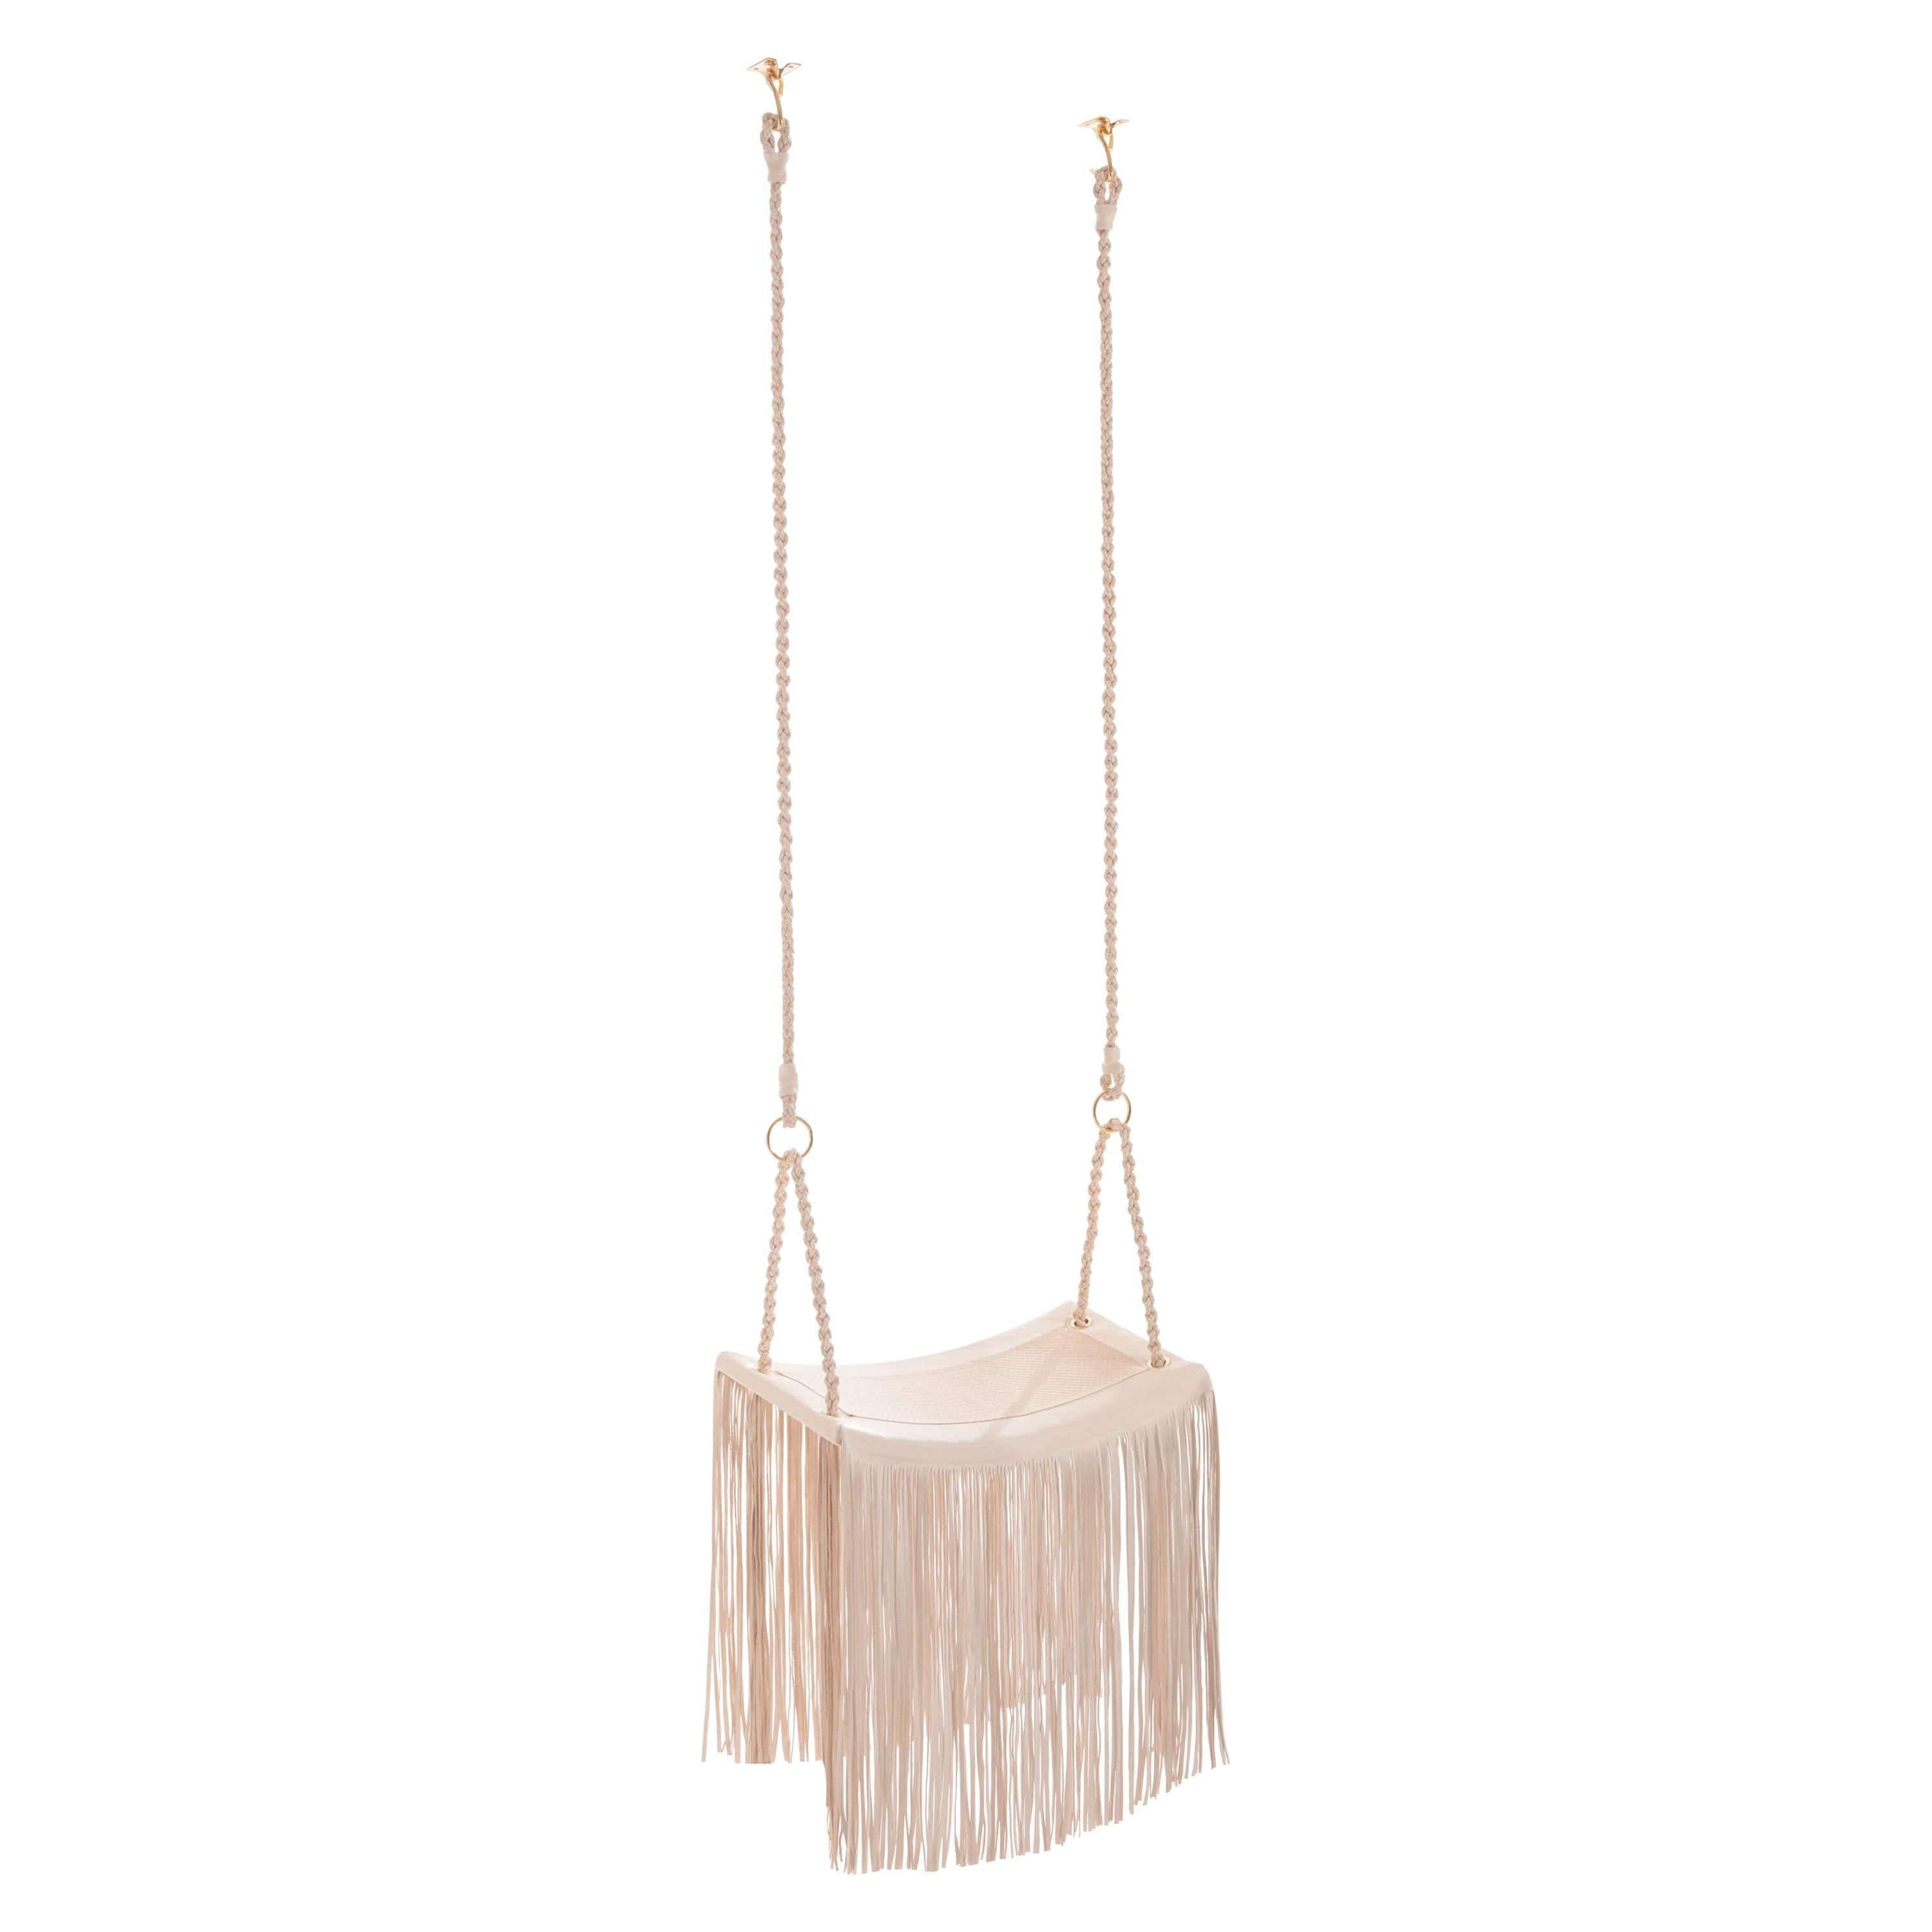 Revoar Hanging Swing Chair Natural Leather Indoor 21st Century Off-White